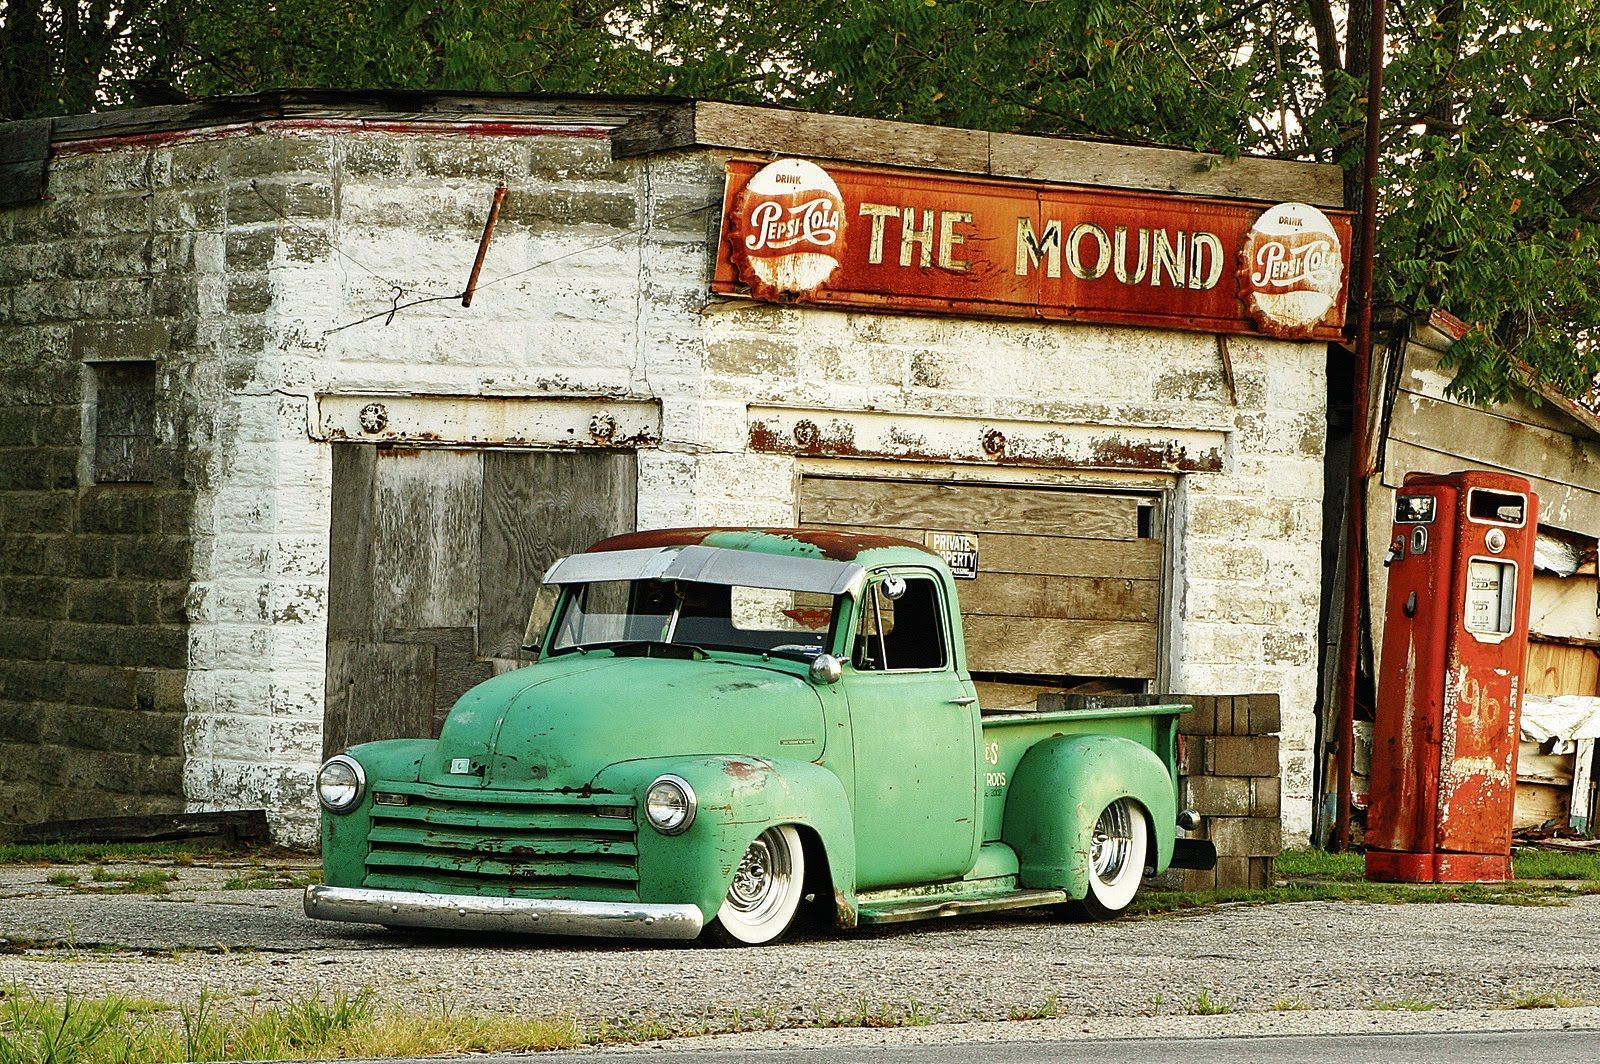 1950 Chevy 3100 Pick Up for sale at abandoned gas station in ...